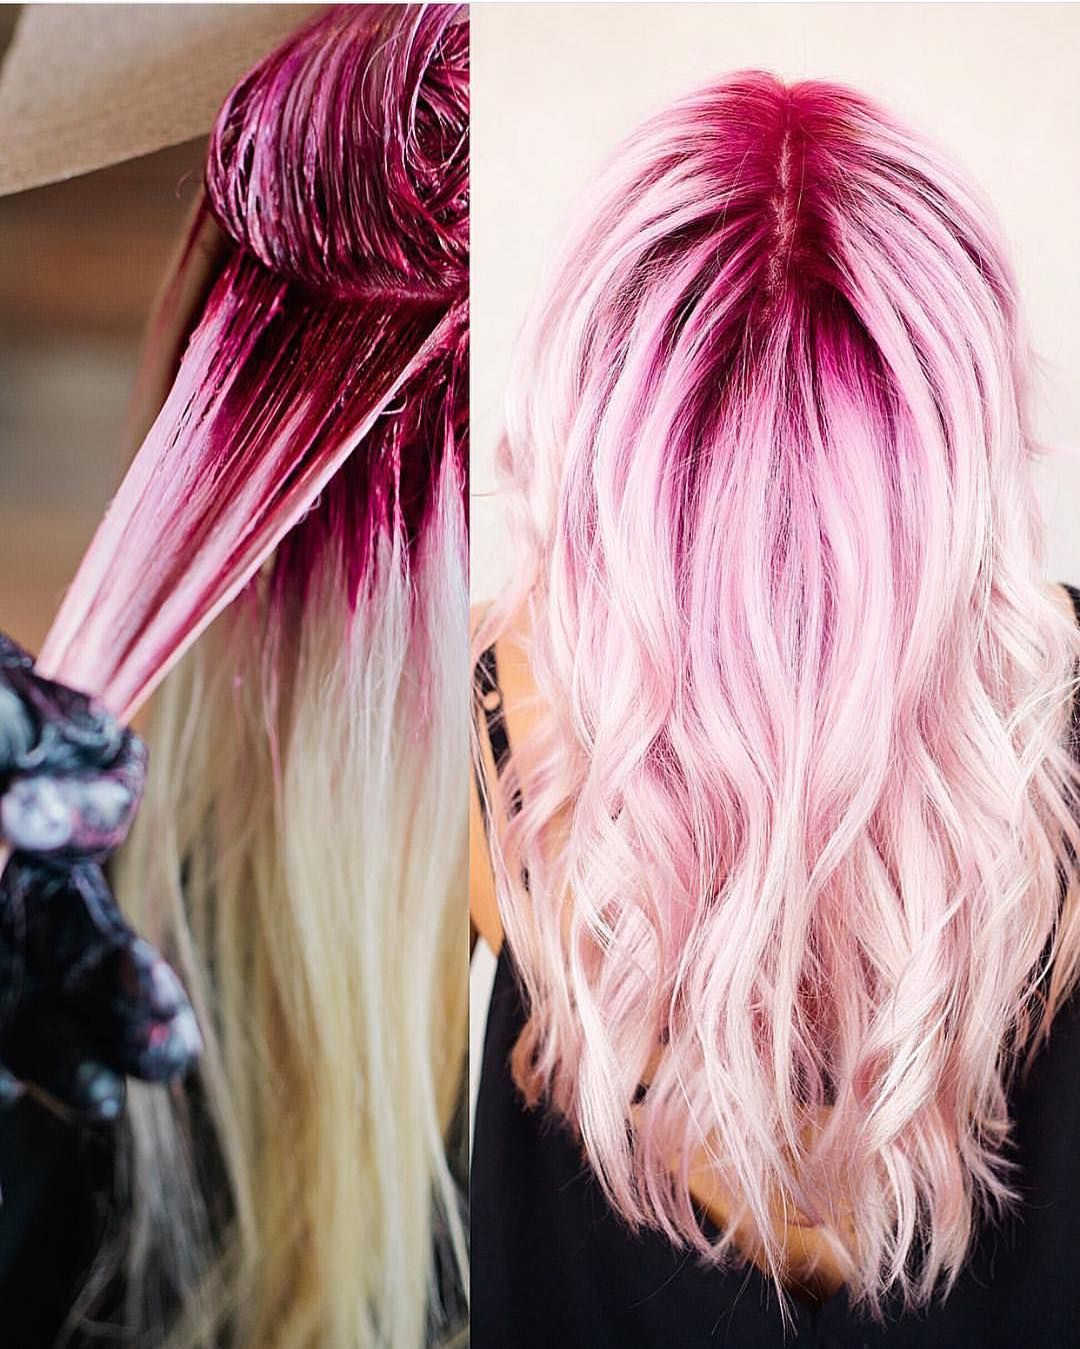 Hot On Beauty On Instagram During And After Shots By Jaywesleyolson Jay This Pink Color Confection Is Absolutely Gorg Hair Styles Dyed Hair Cool Hair Color